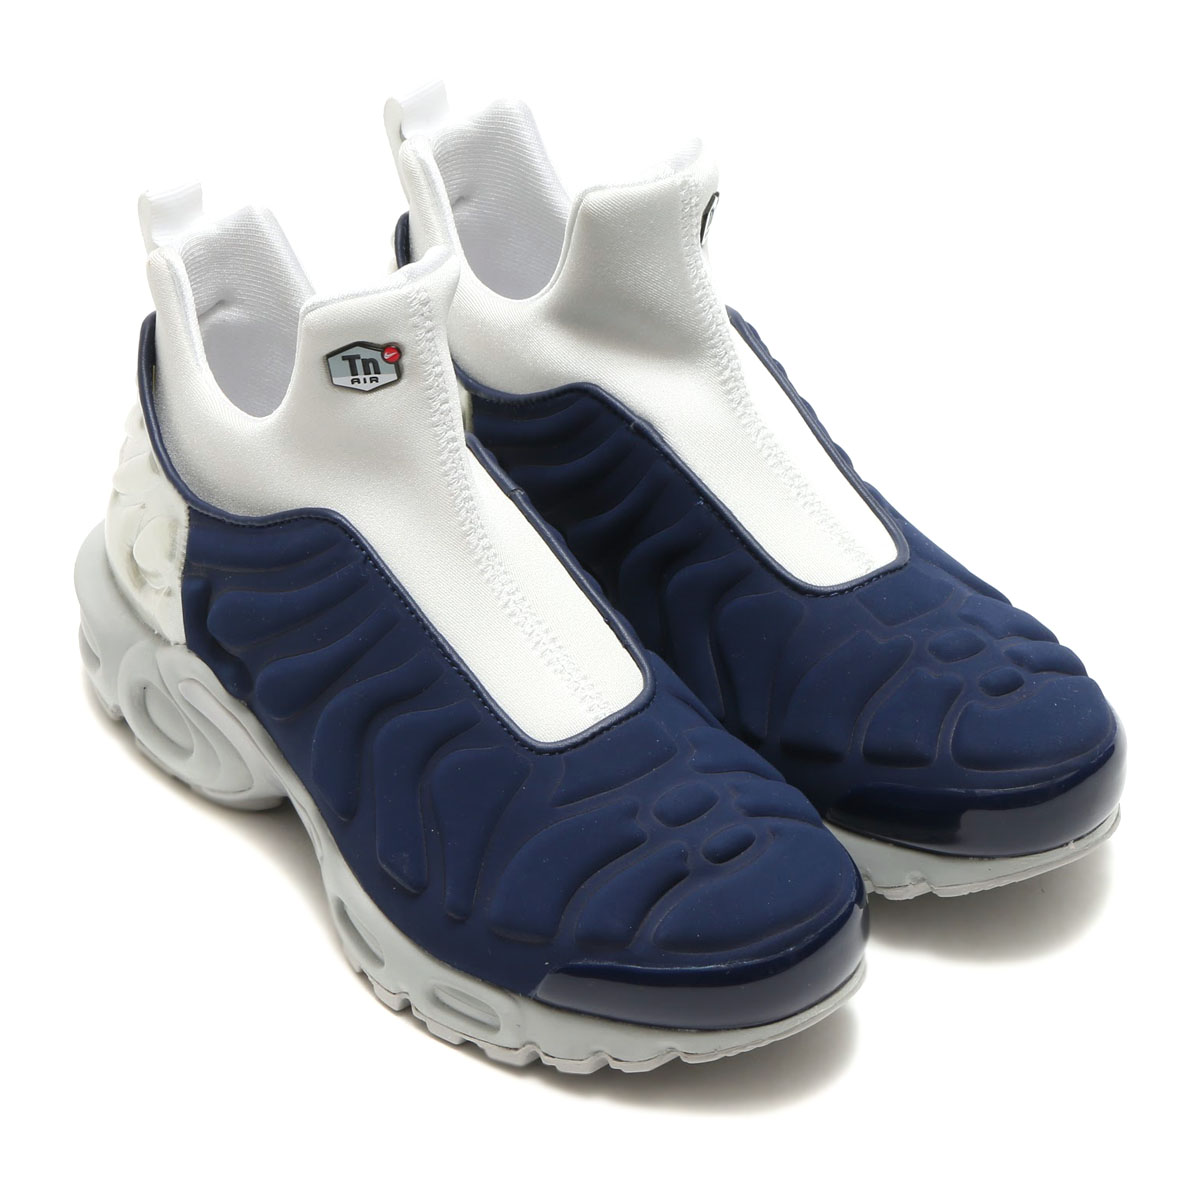 sports shoes ff253 69e21 One pair that arranged AIR MAX PLUS of the birth into slip-ons type in 1998.